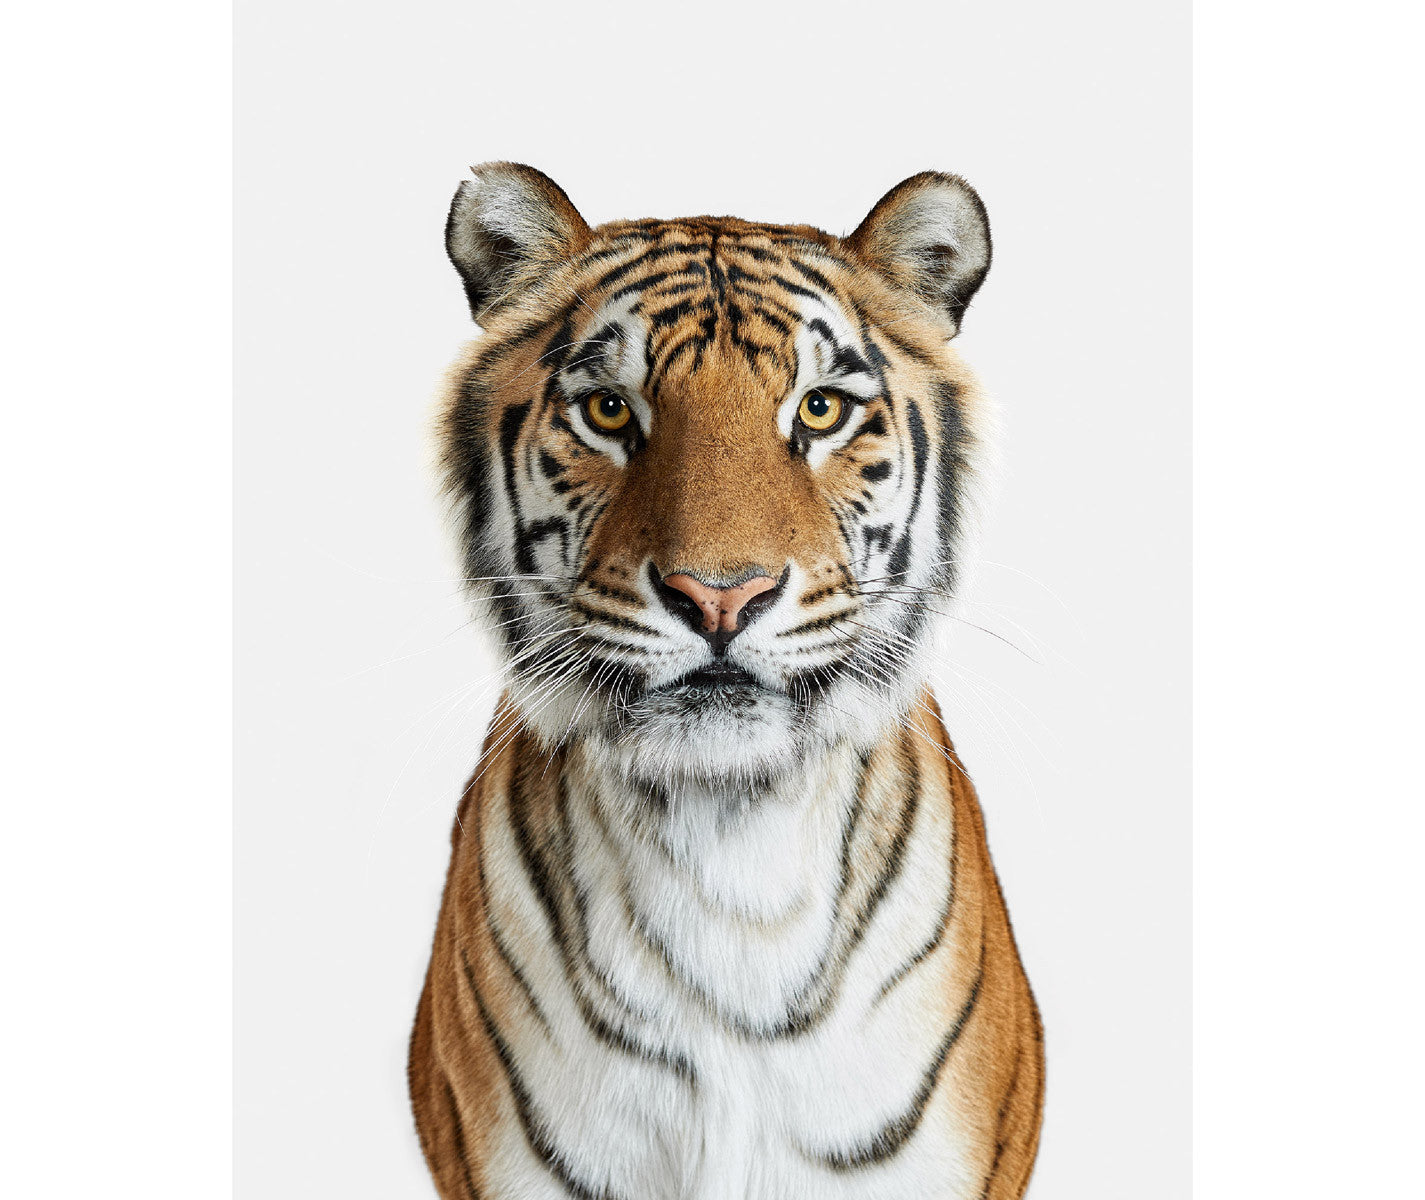 bengal tiger no 1 - Tiger Pictures To Color 2